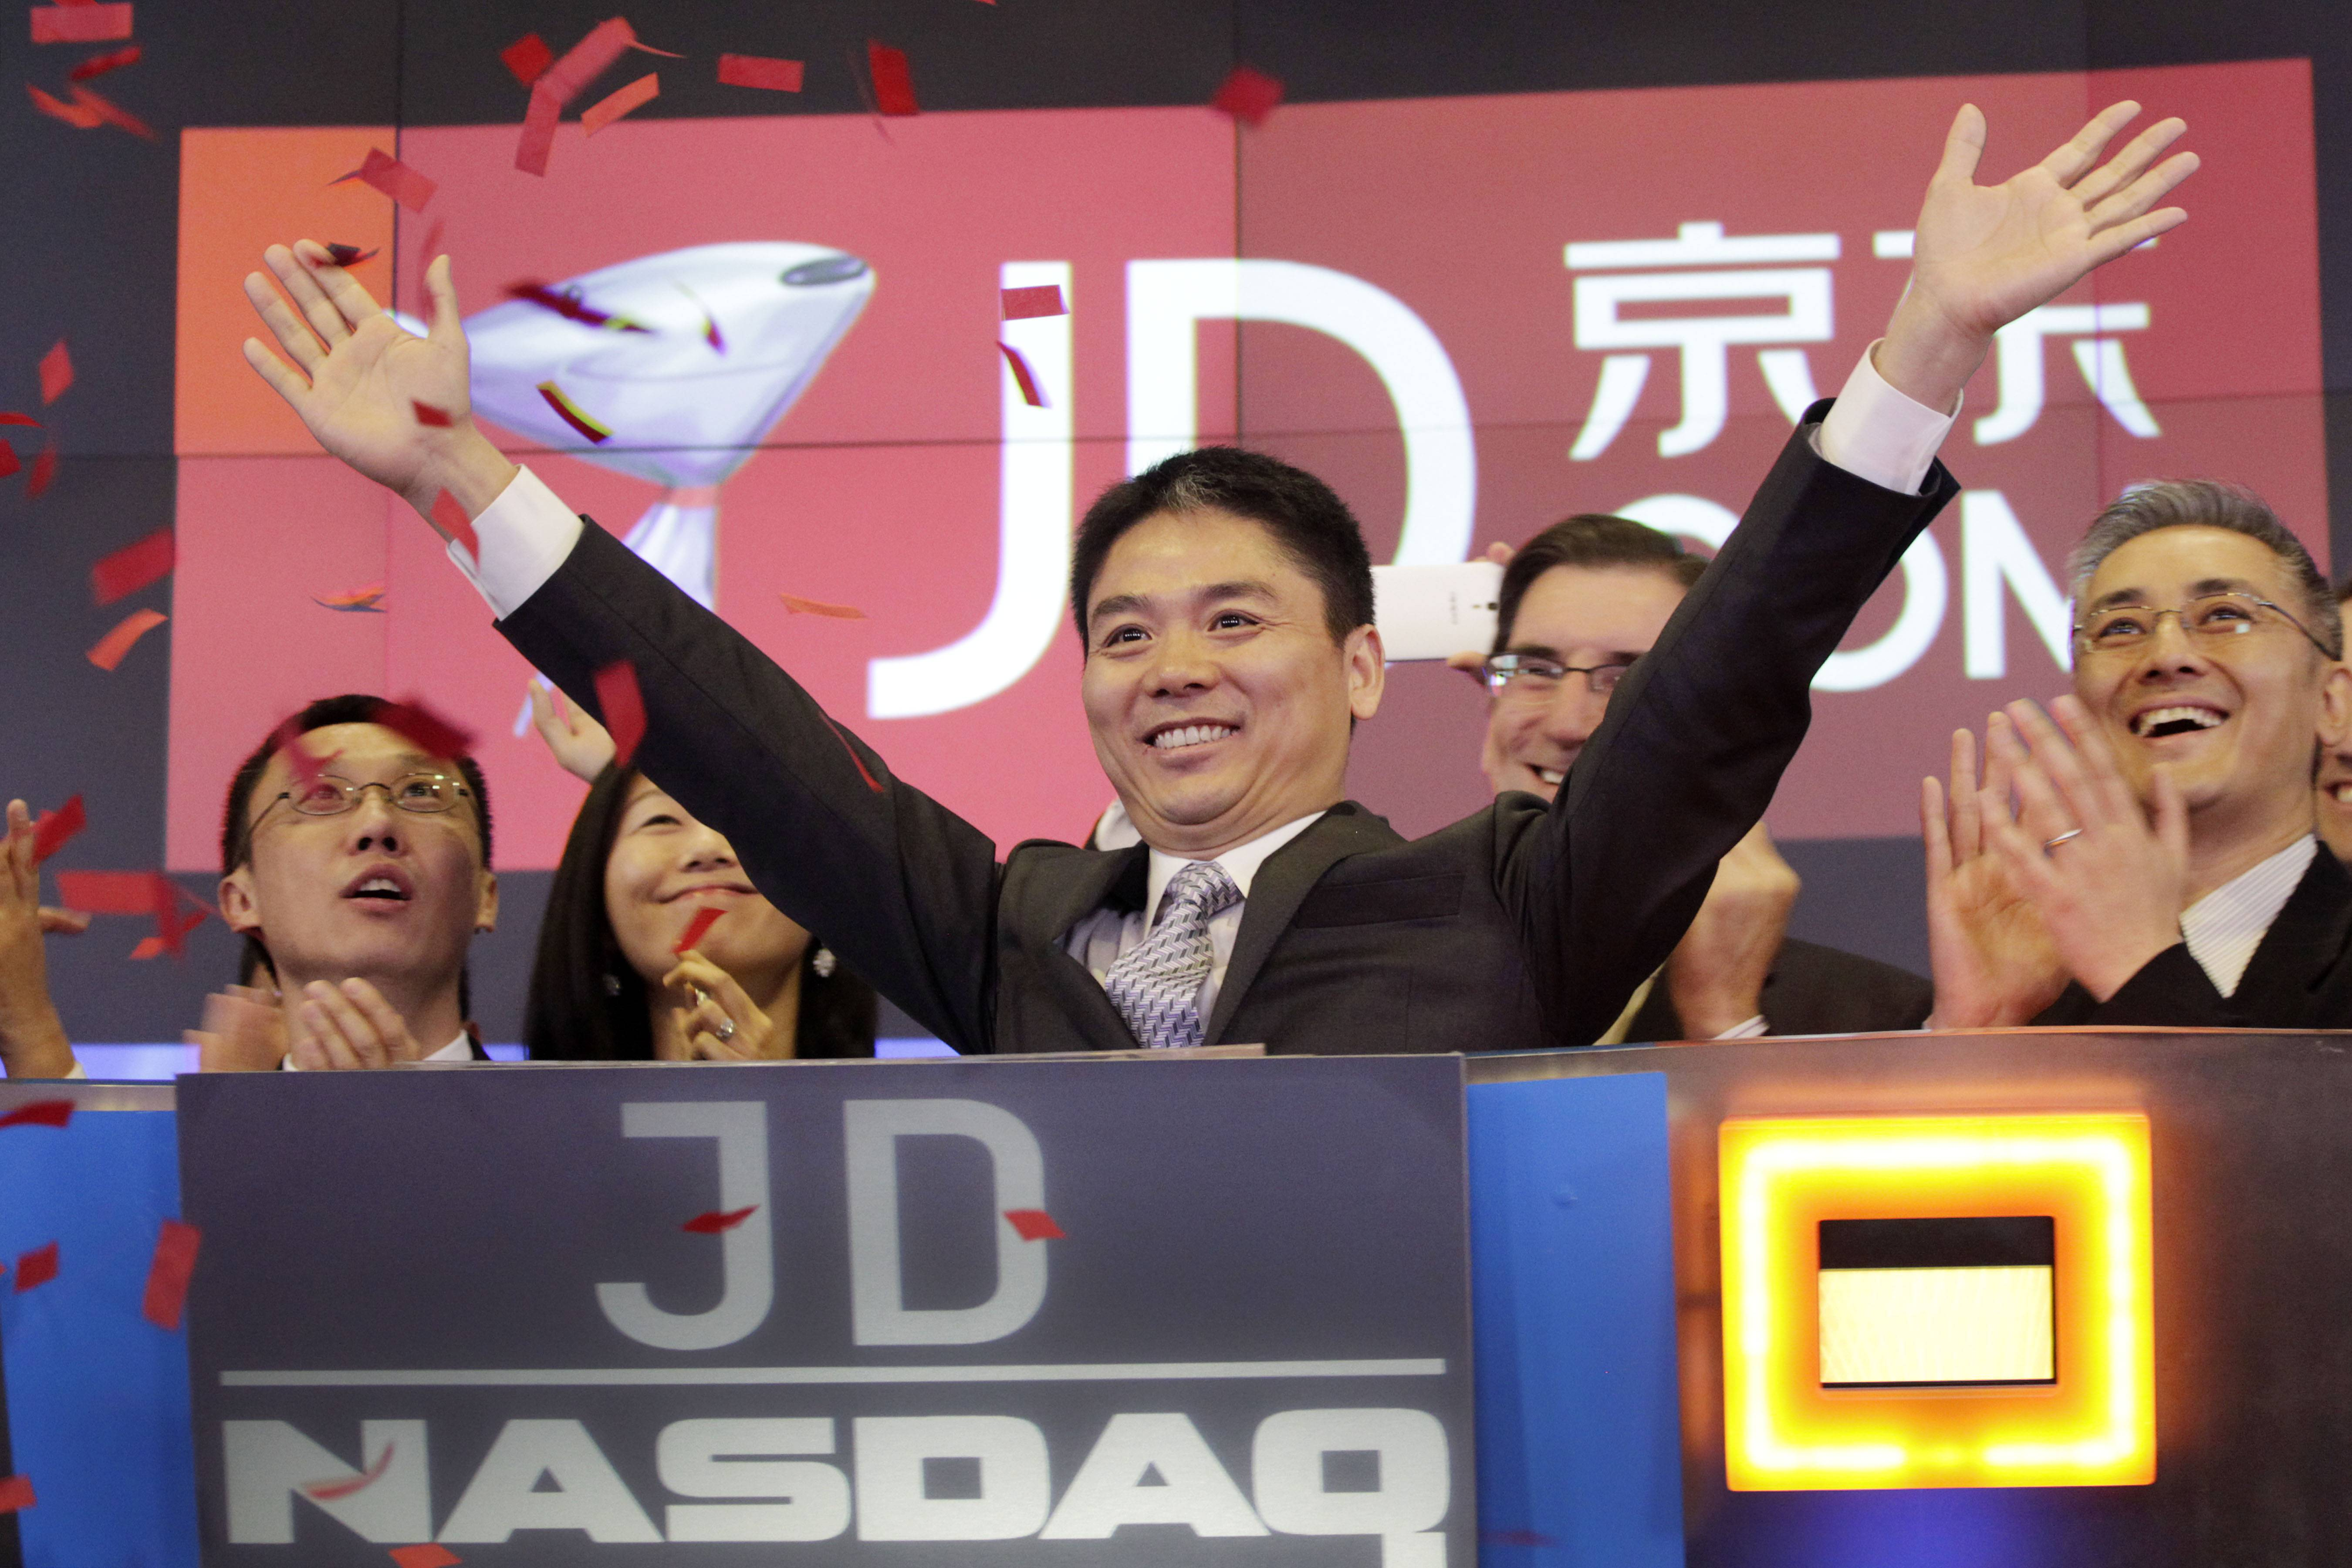 Qiangdong Liu, CEO of JD.com, raises his arms to celebrate the IPO for his company at the Nasdaq MarketSite, Thursday in New York. JD.com, China's No. 2 e-commerce service, is headquartered in Beijing.